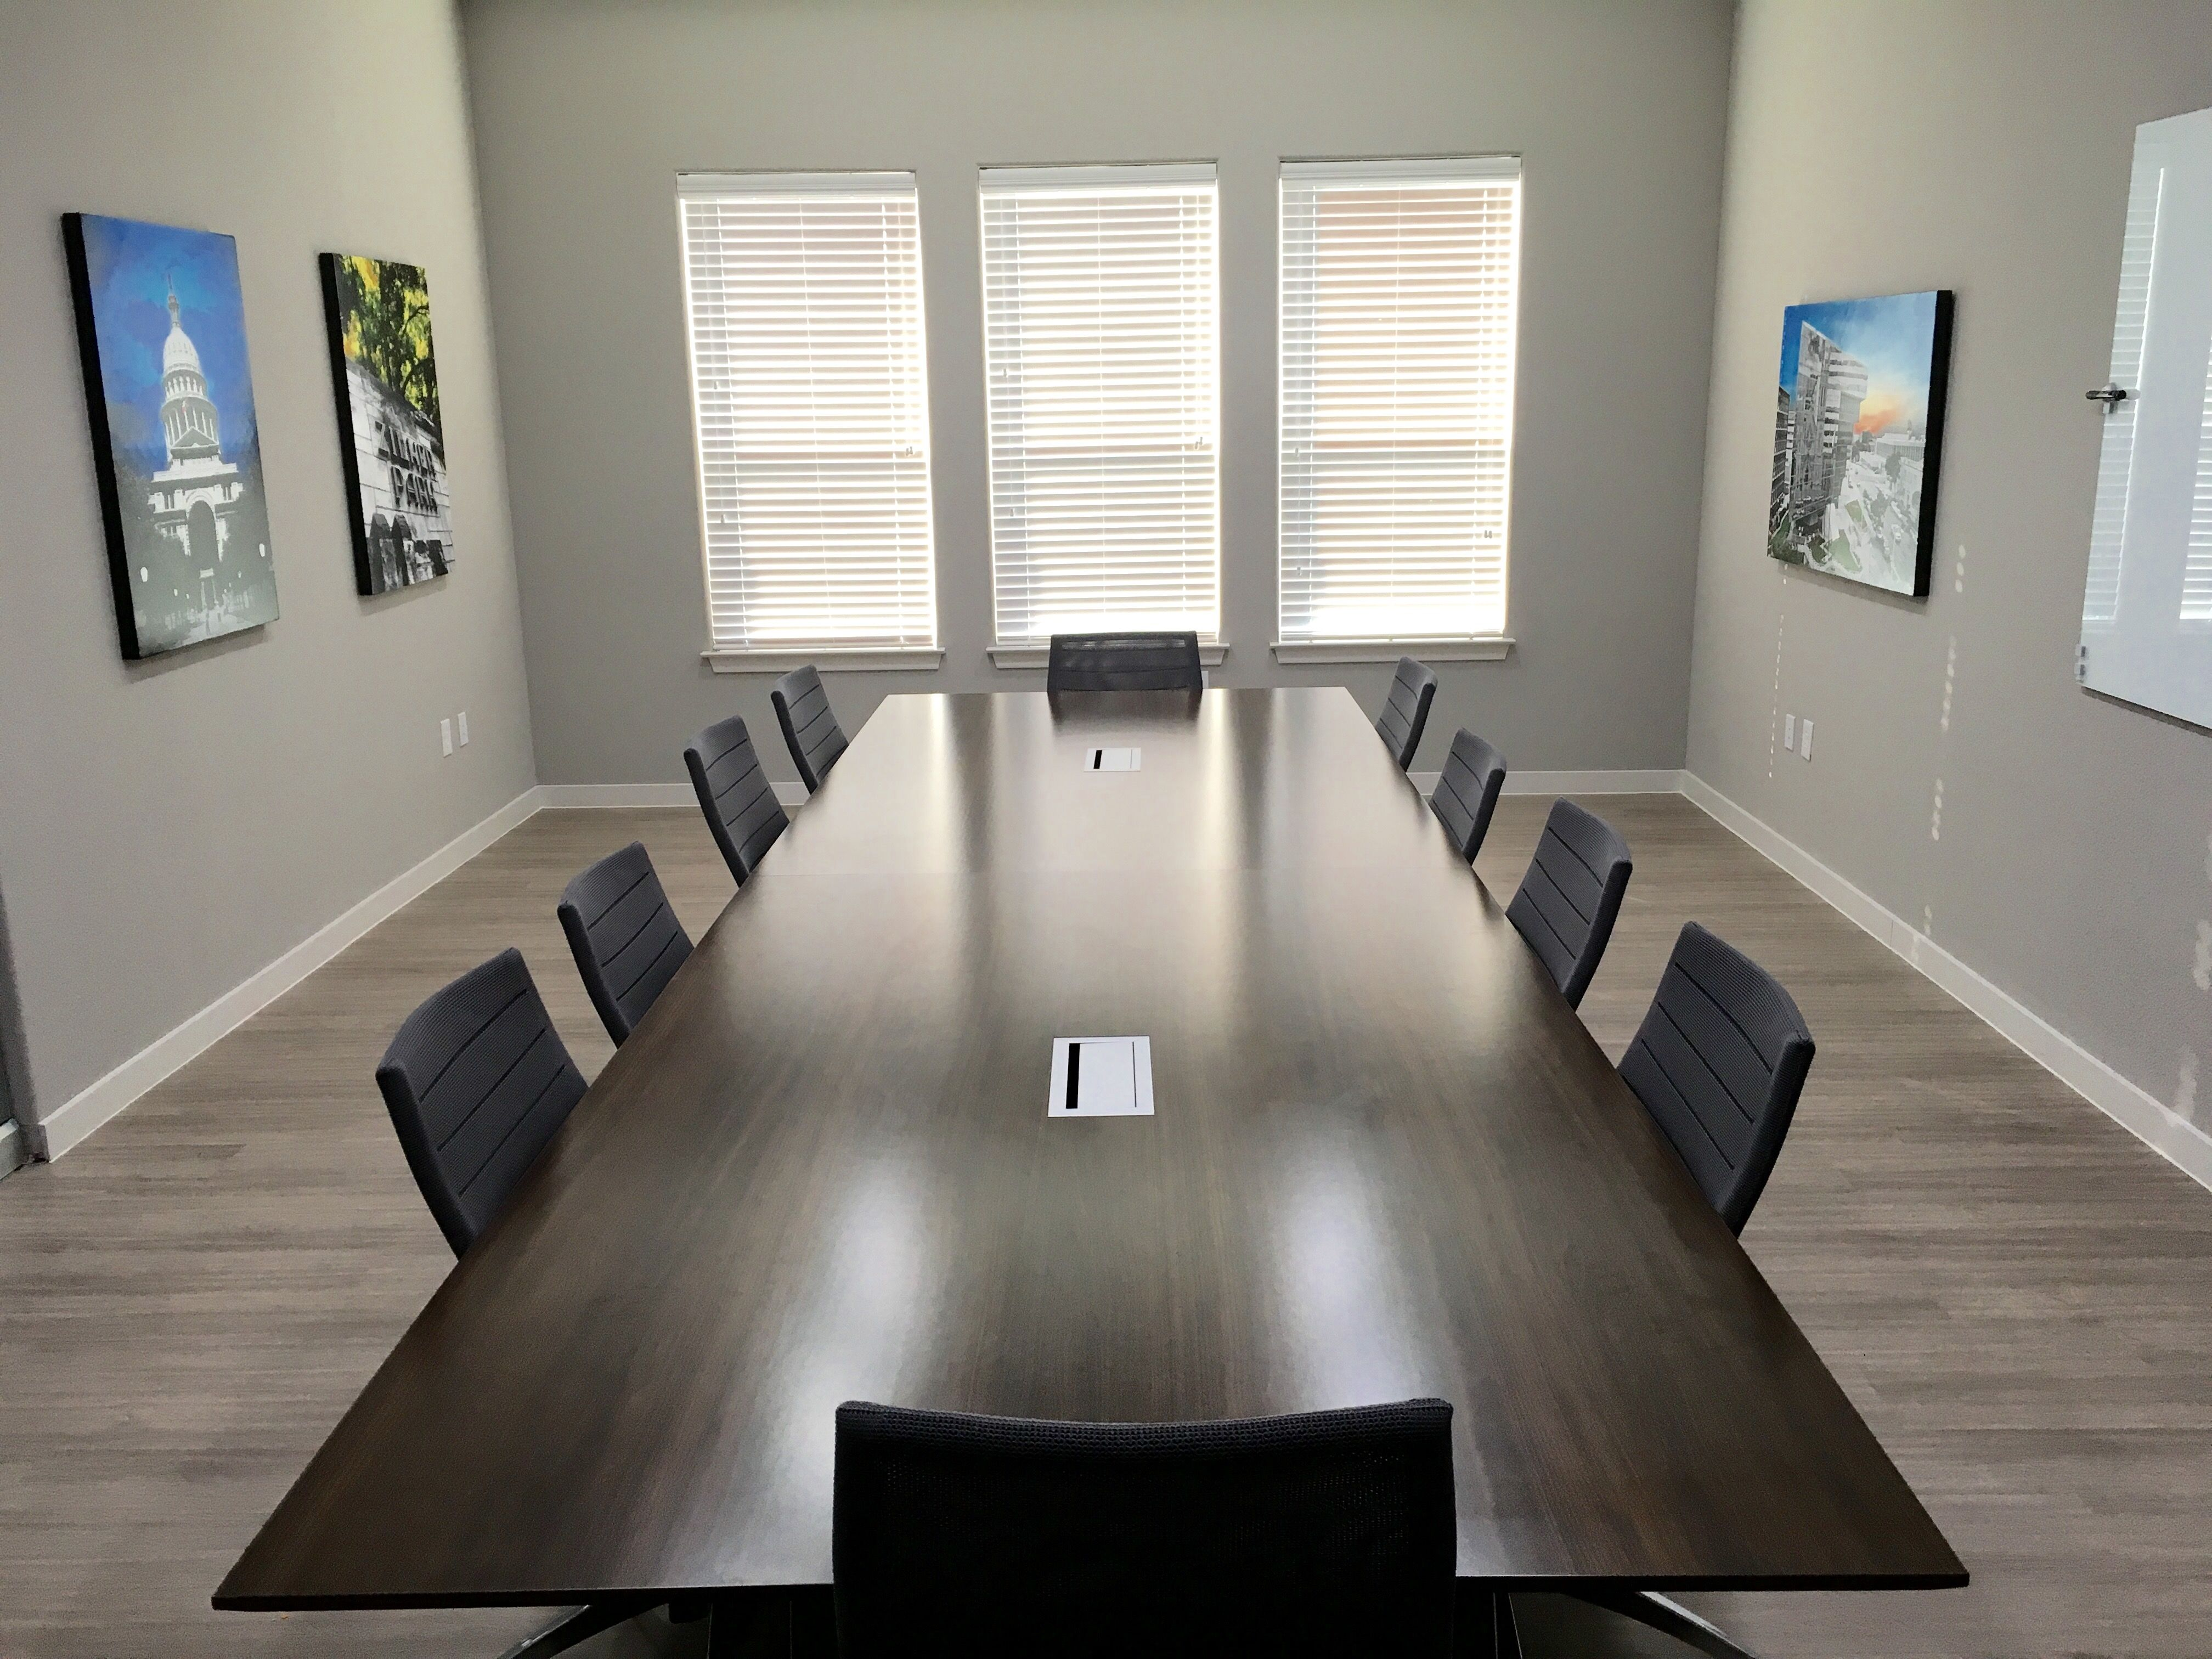 Person Round Conference Table Httparghartscom Pinterest - Round conference table for 12